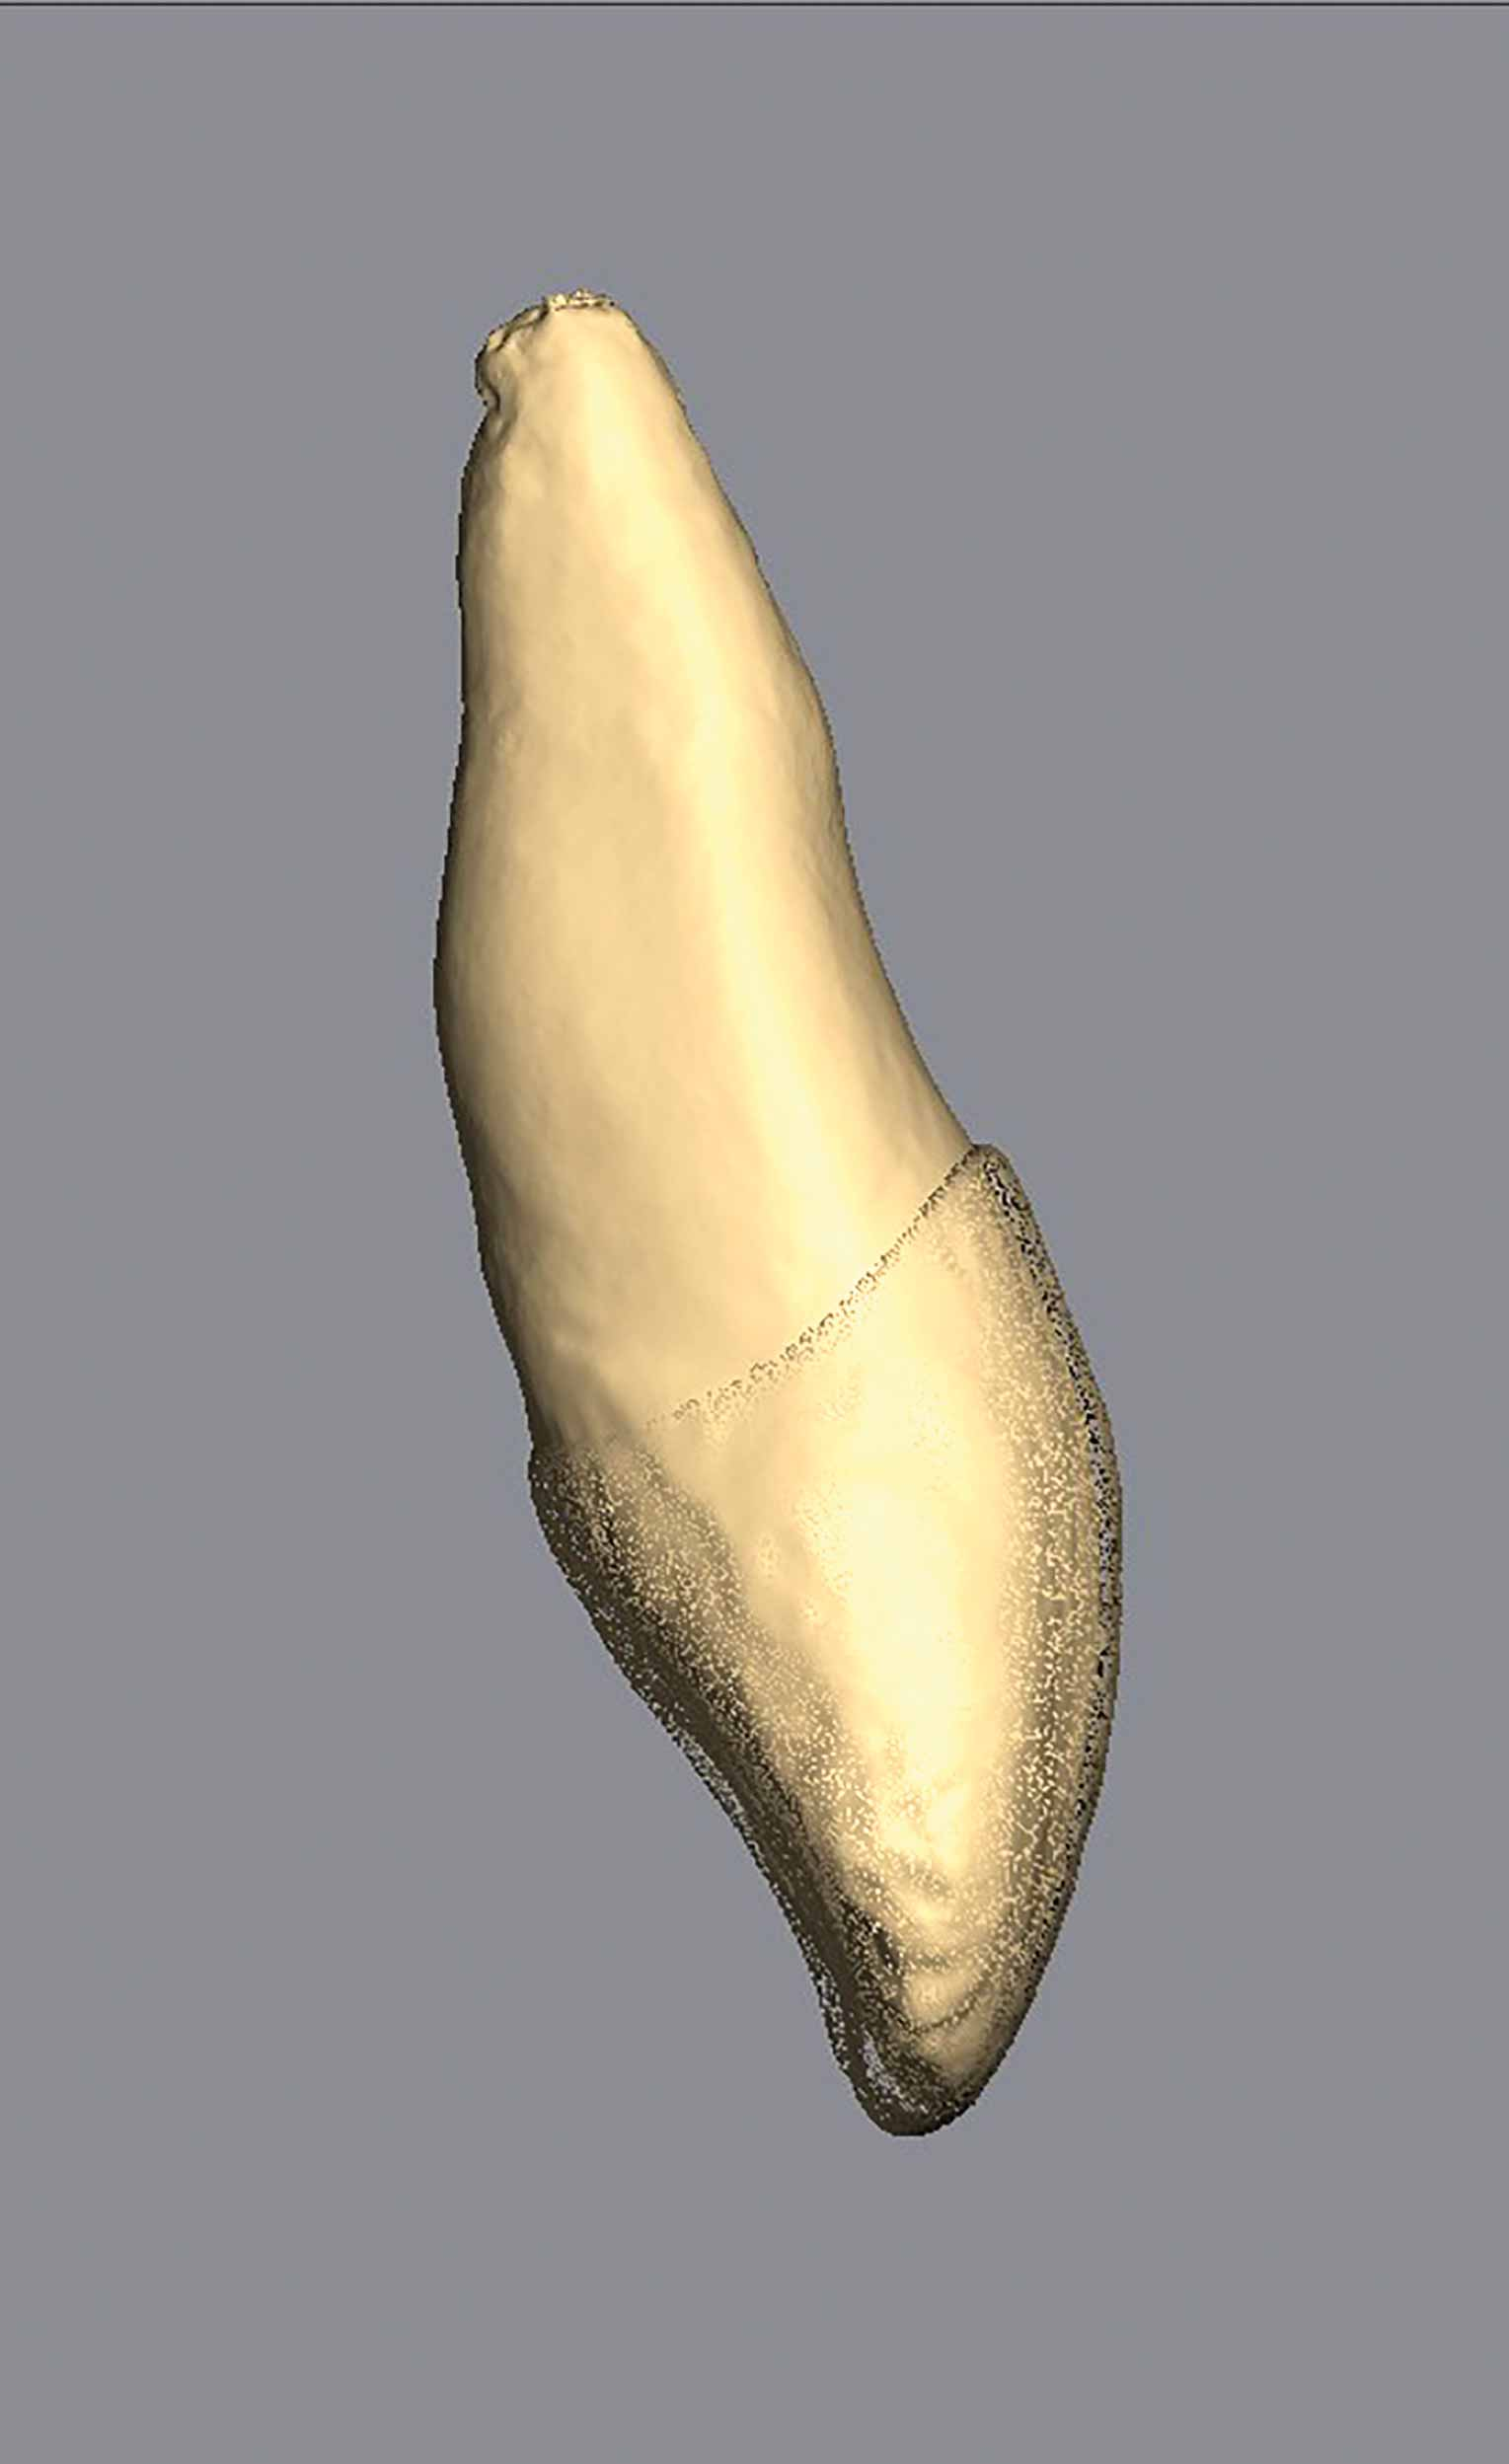 Another real extracted tooth modelled for Vitapan